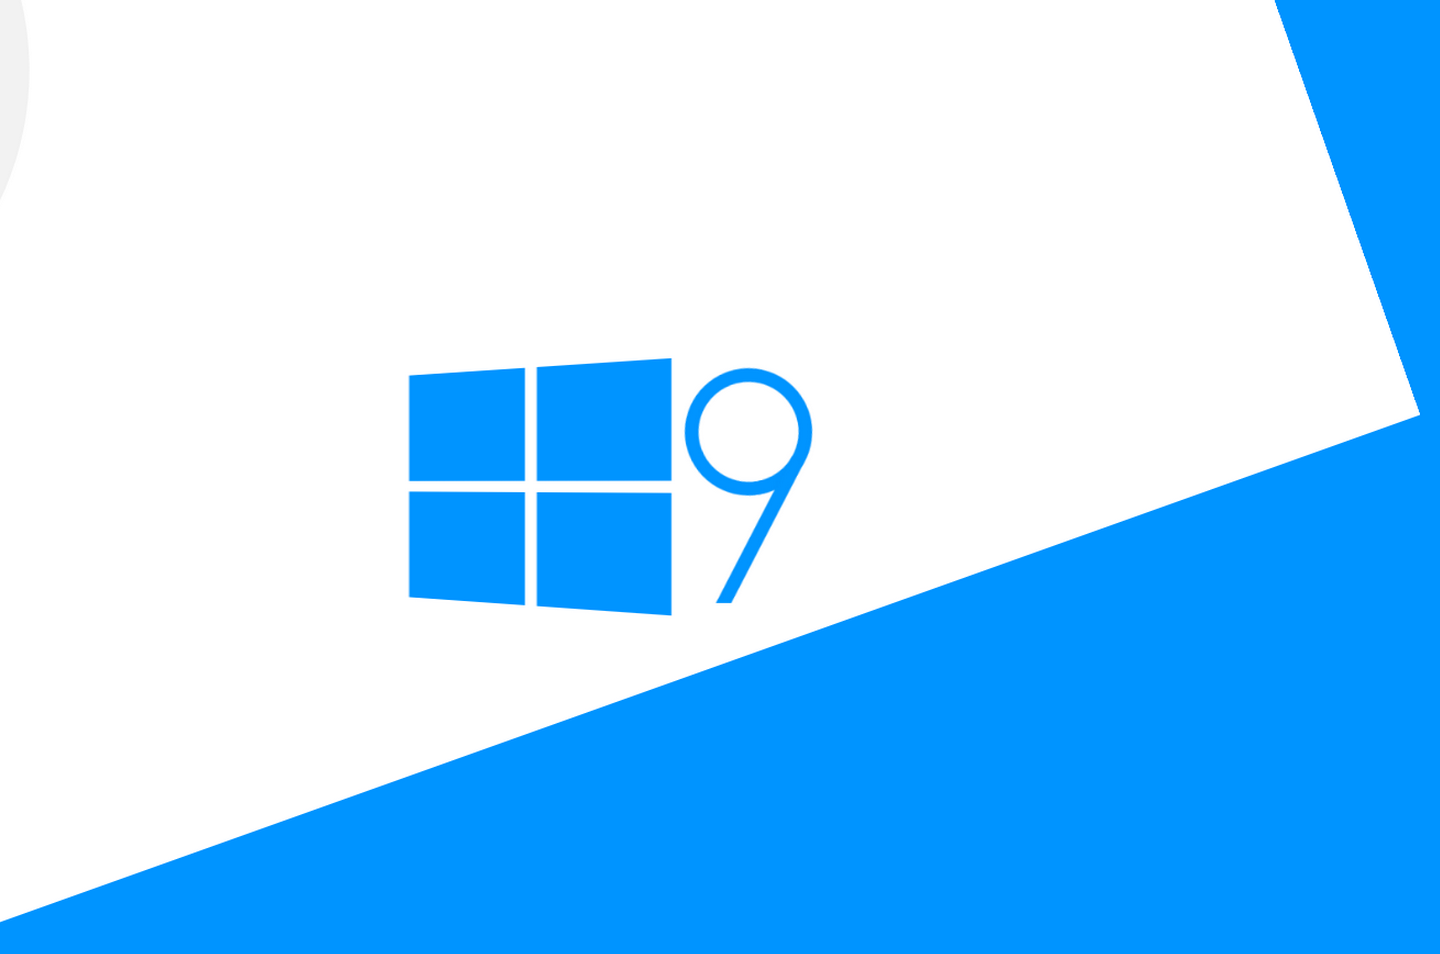 Windows 9 will be free for Windows 8 users